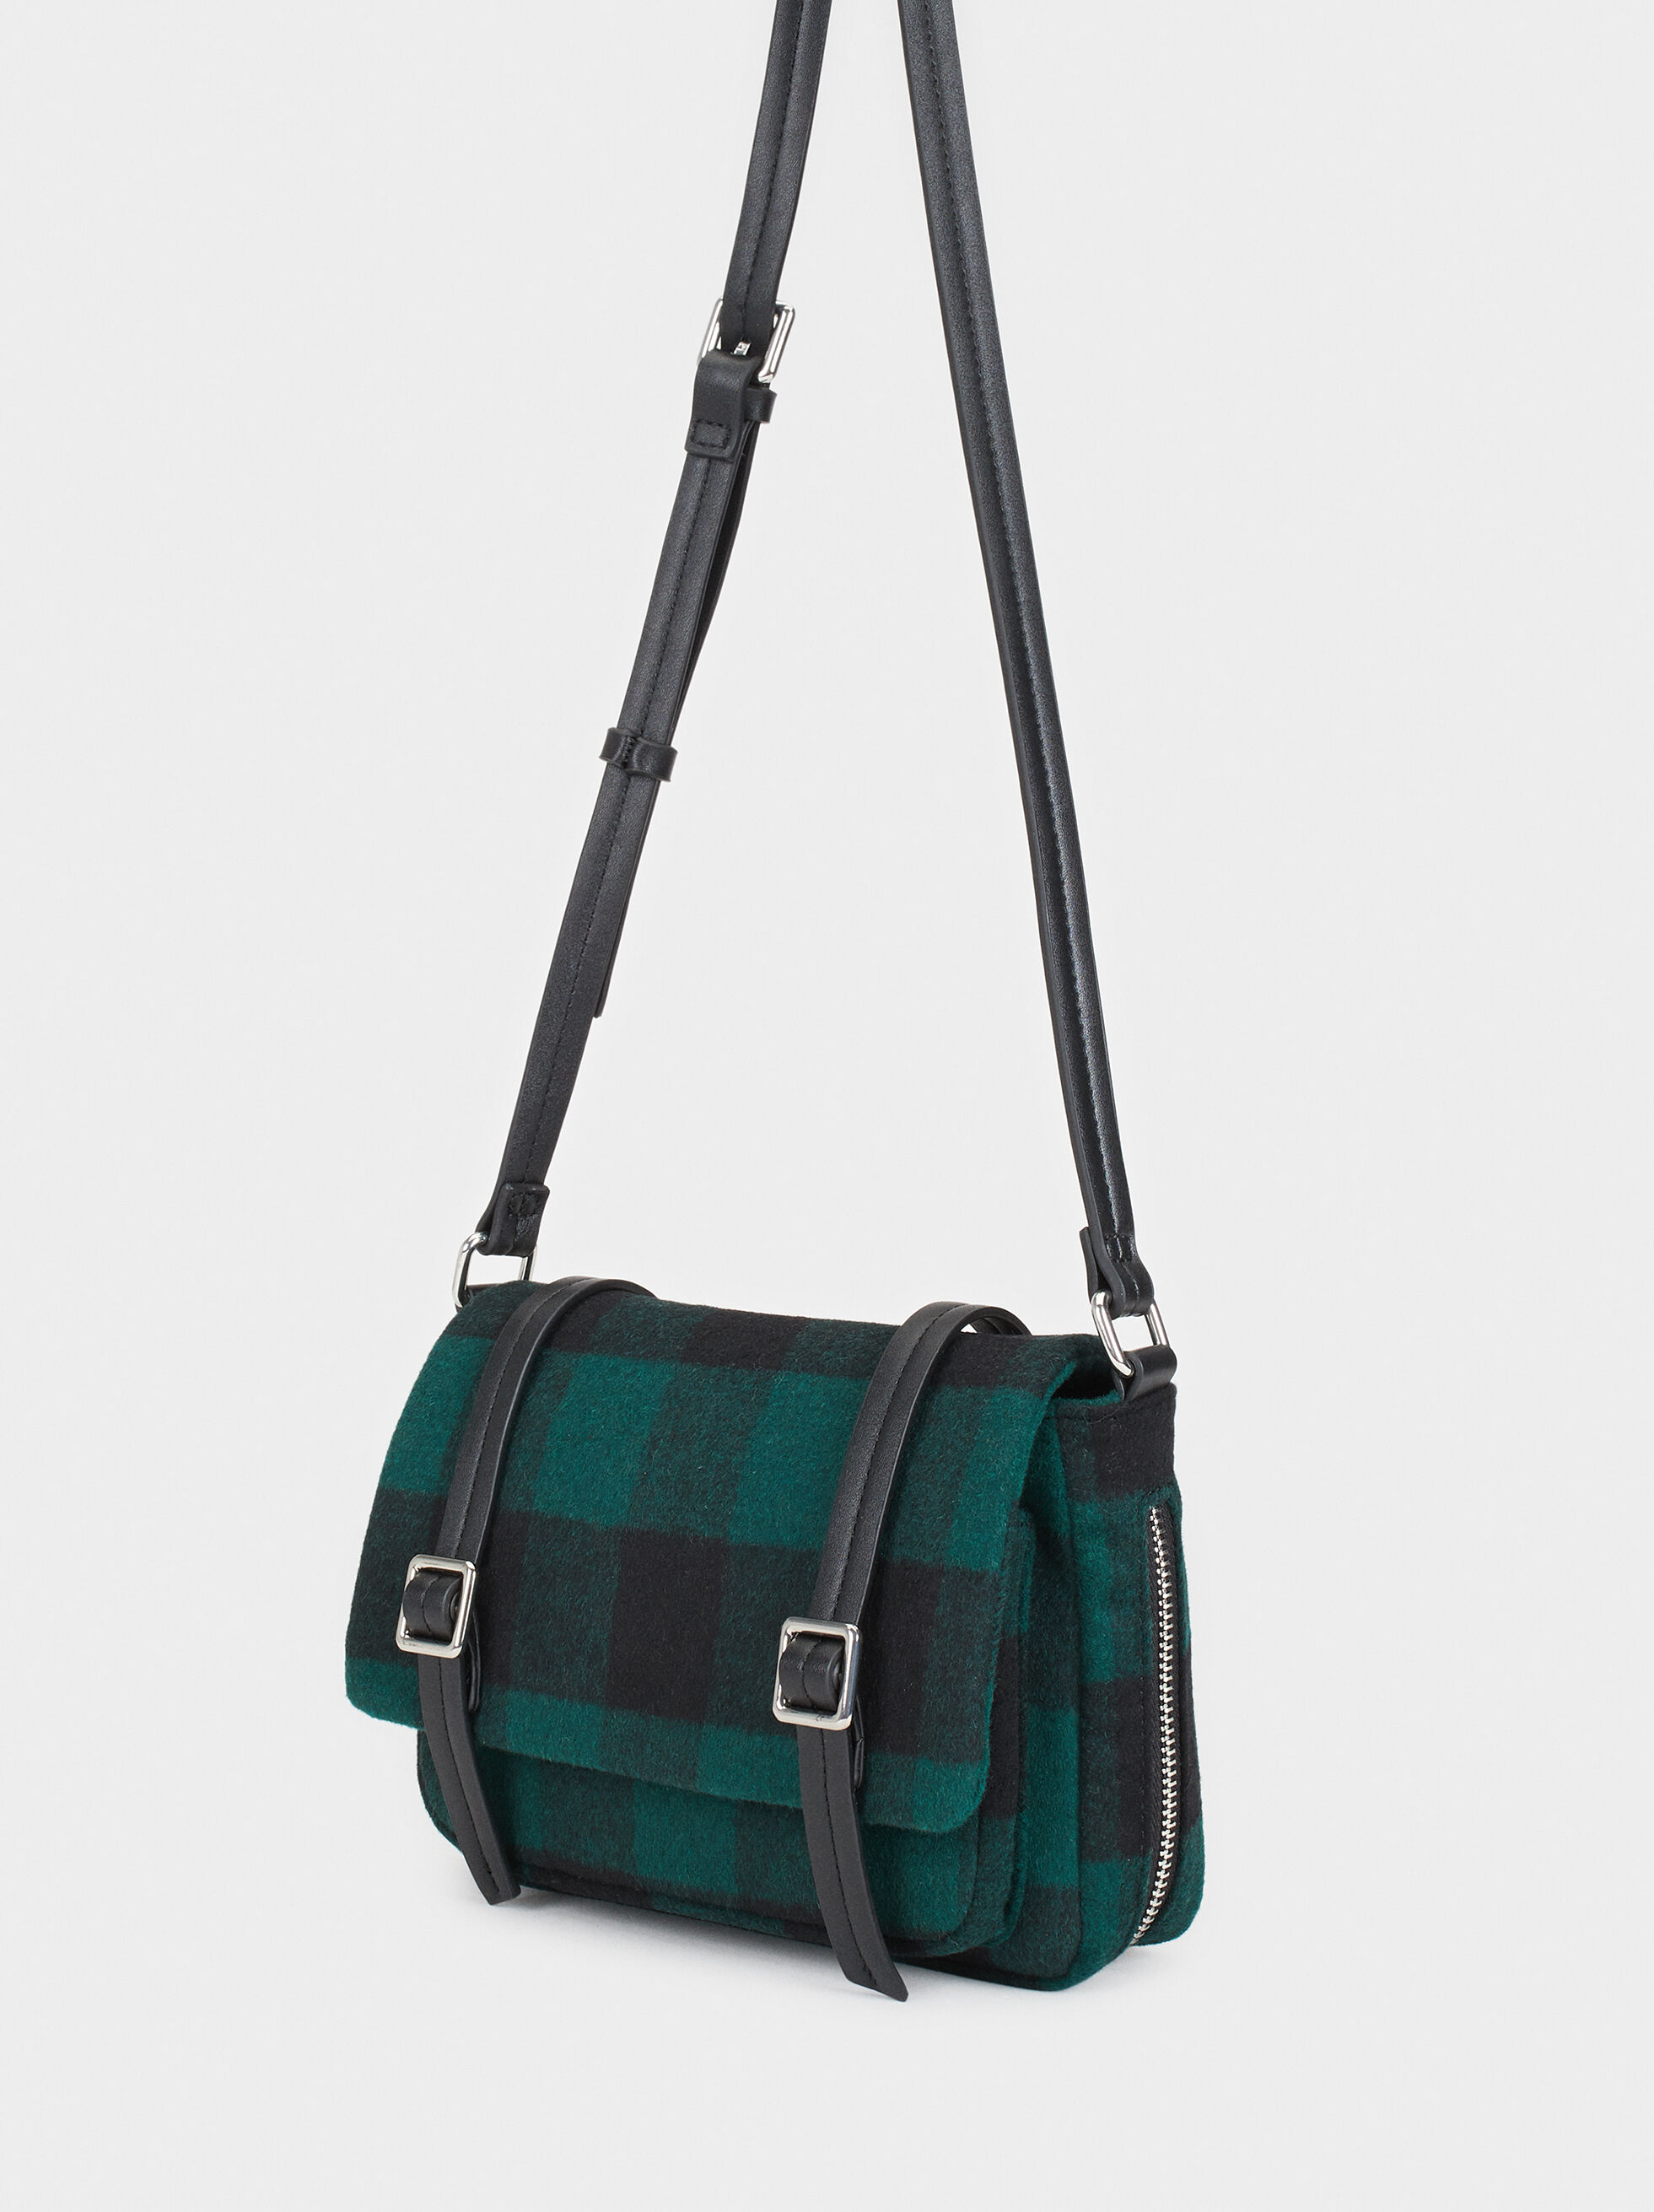 Checked Print Crossbody Bag, Green, hi-res